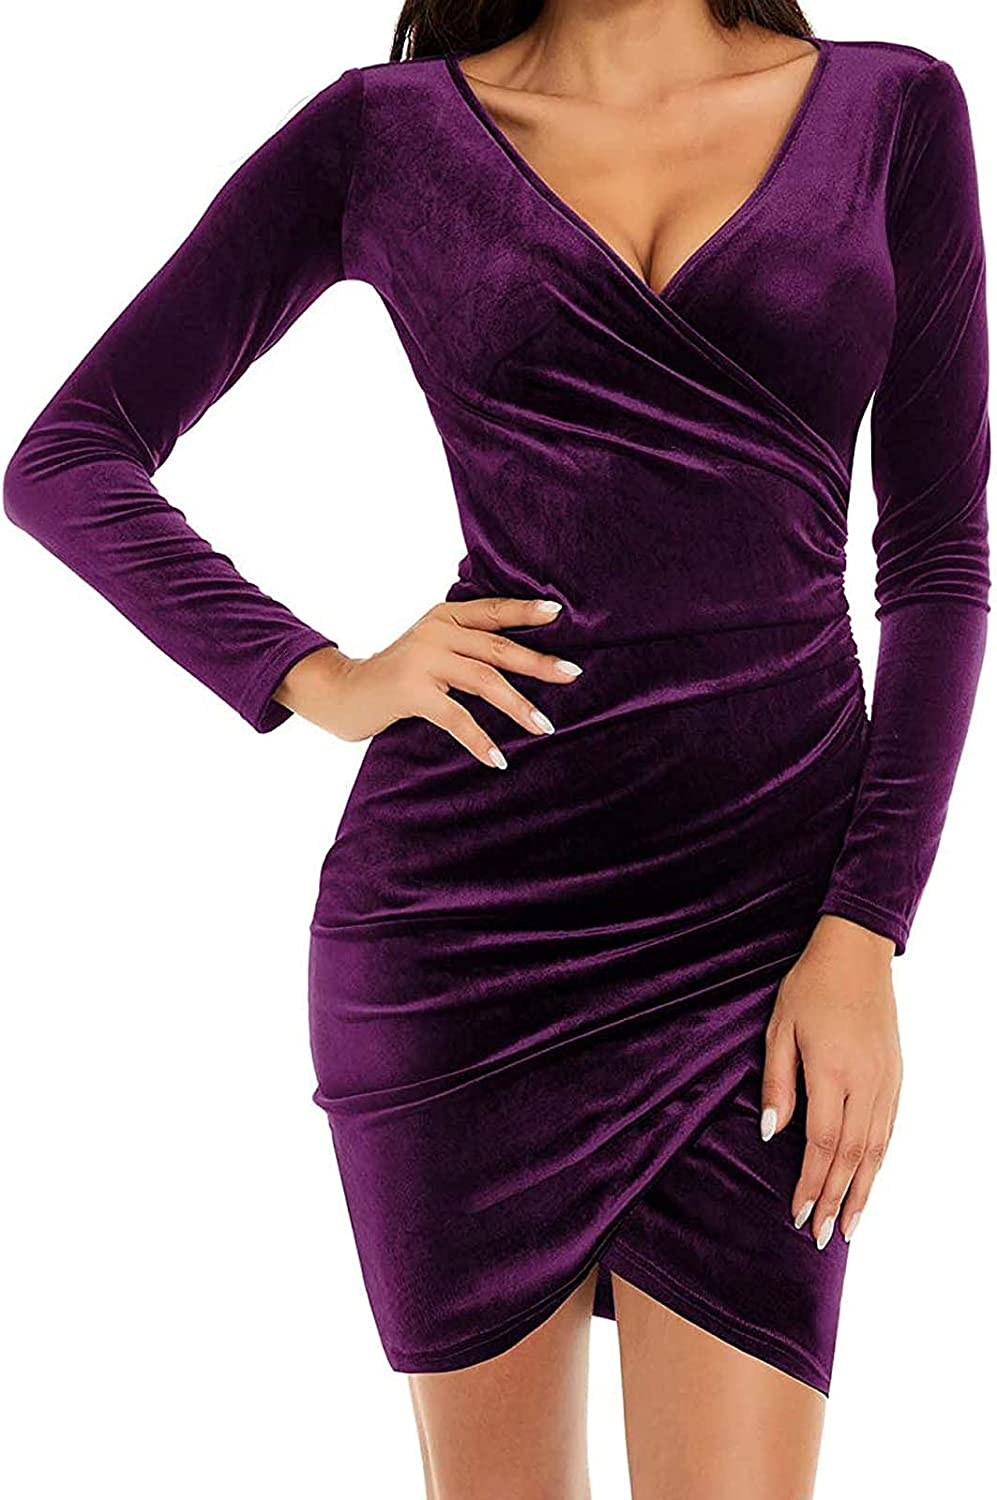 Womens Fashion Ruched Elegant Bodycon Dress Long Sleeve Wrap V Neck Cross Front Fitted Short Dresses